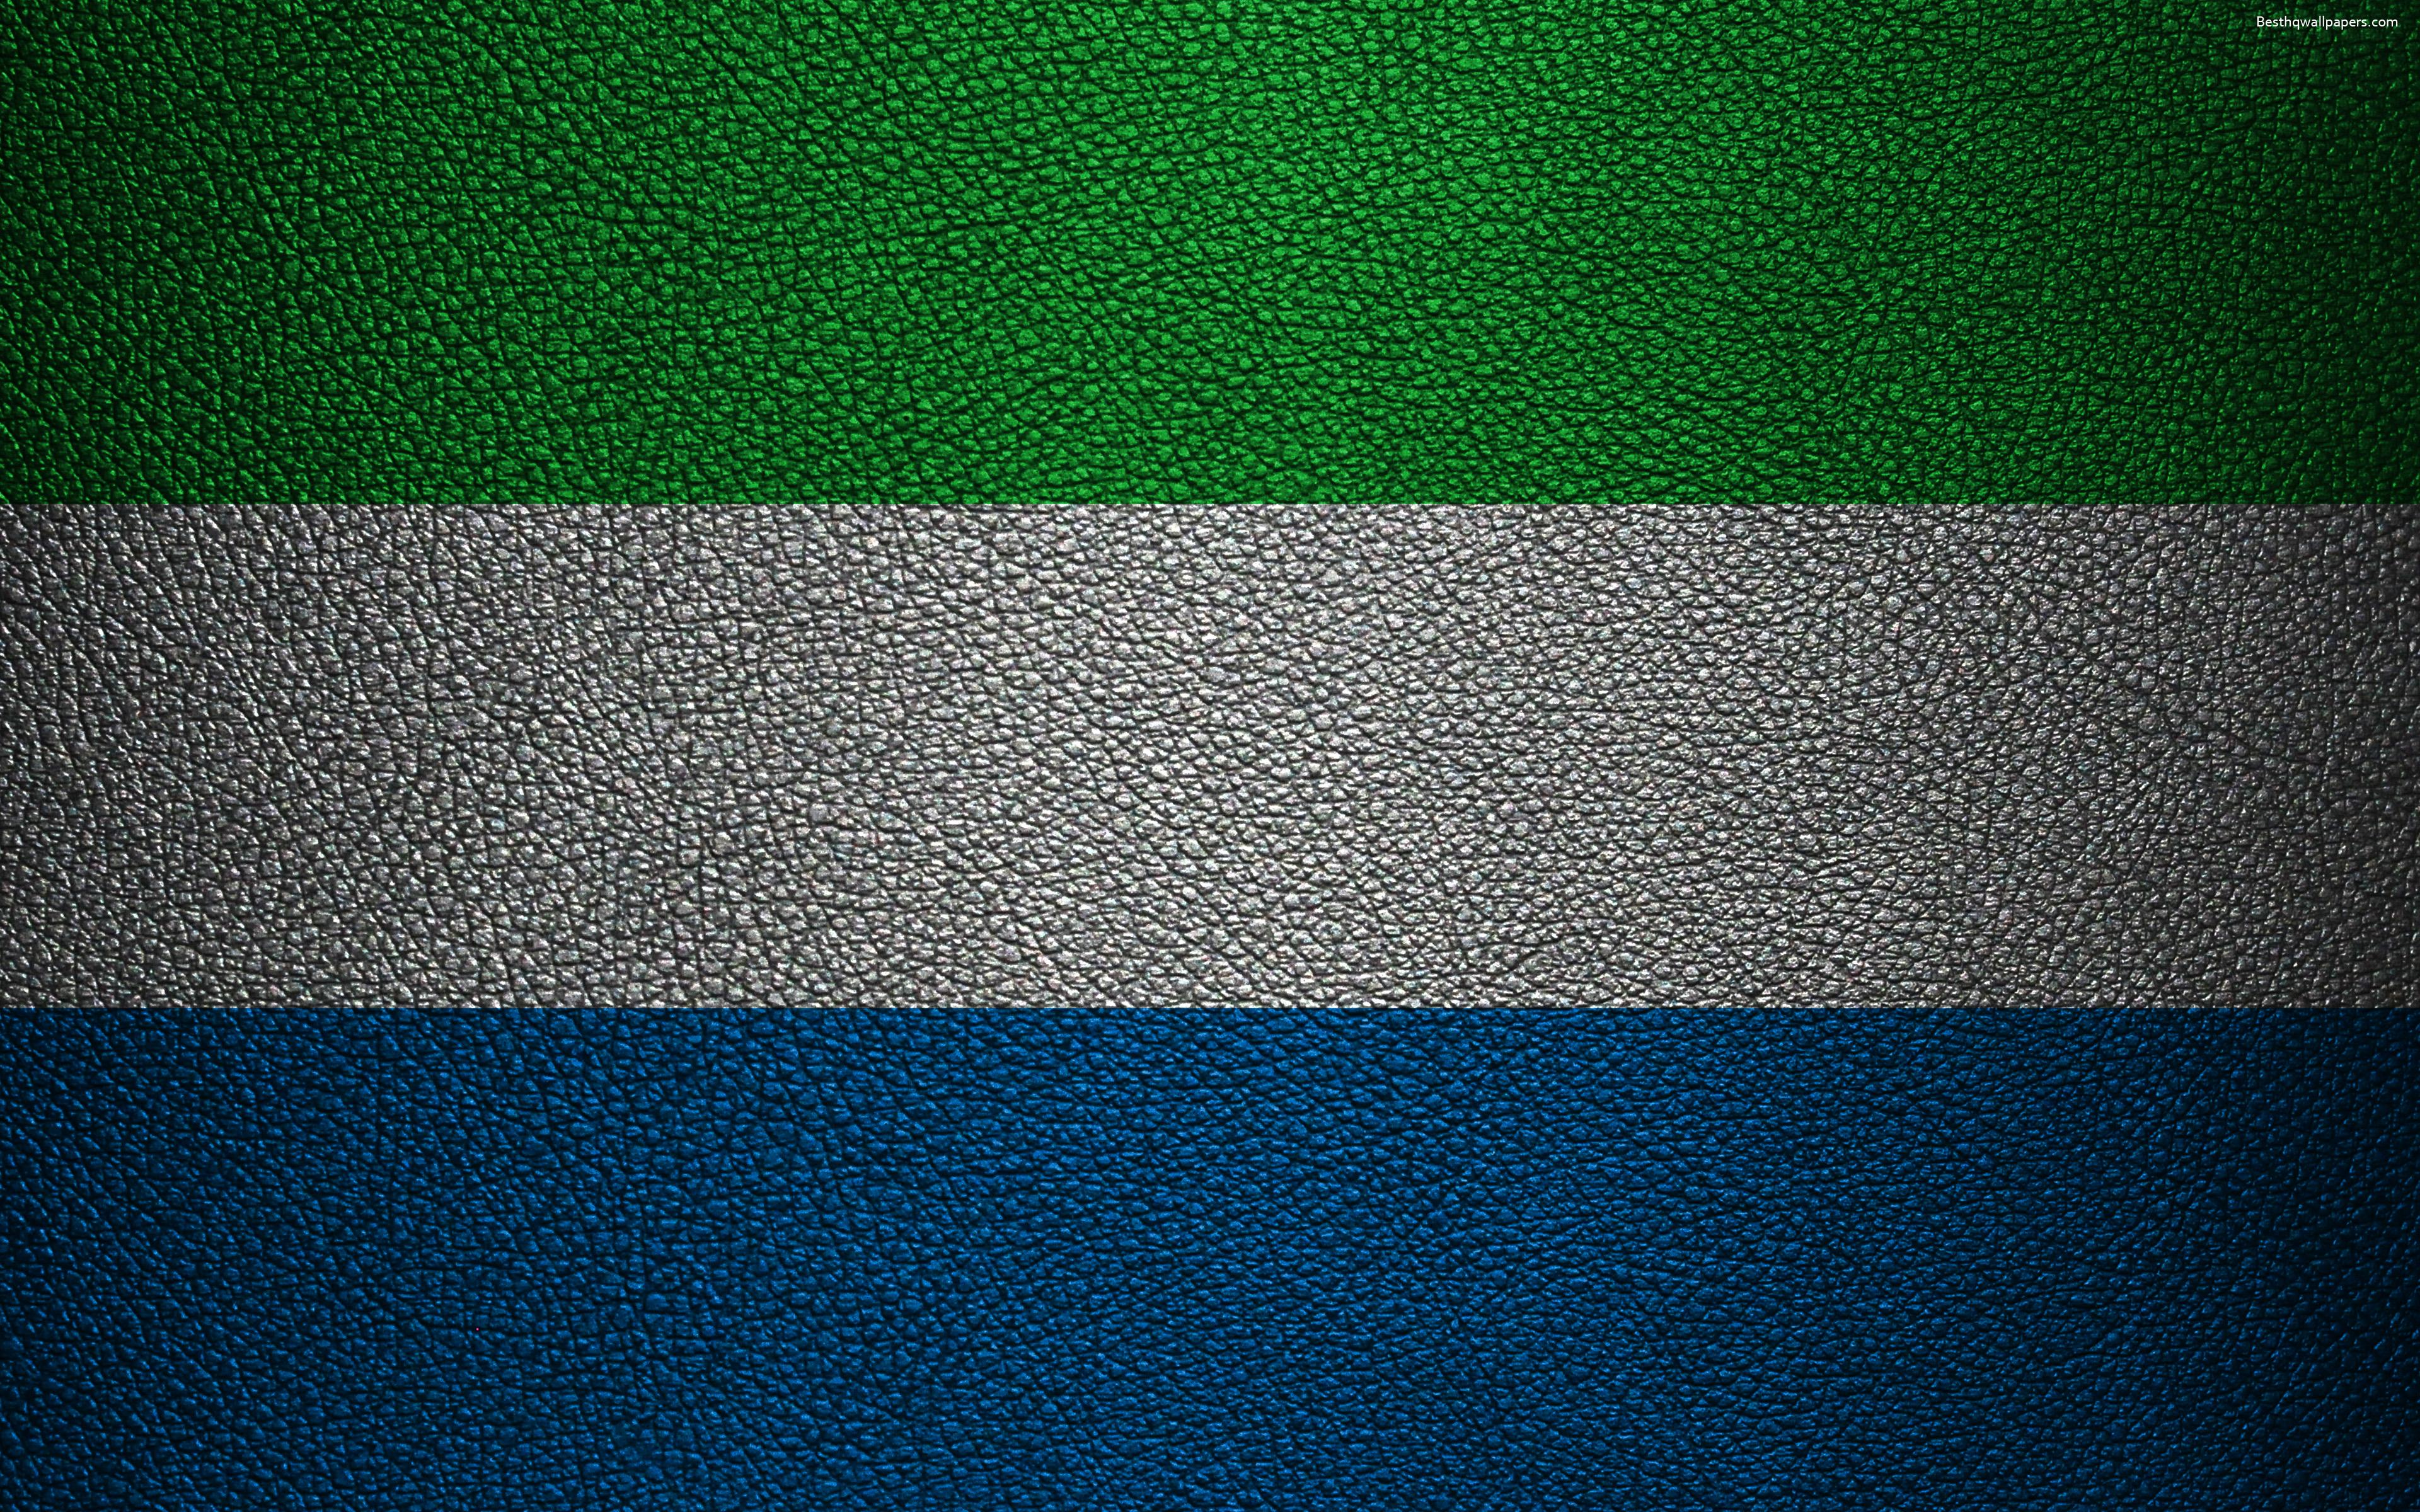 Download wallpapers Flag of Sierra Leone, Africa, 4k, leather ...